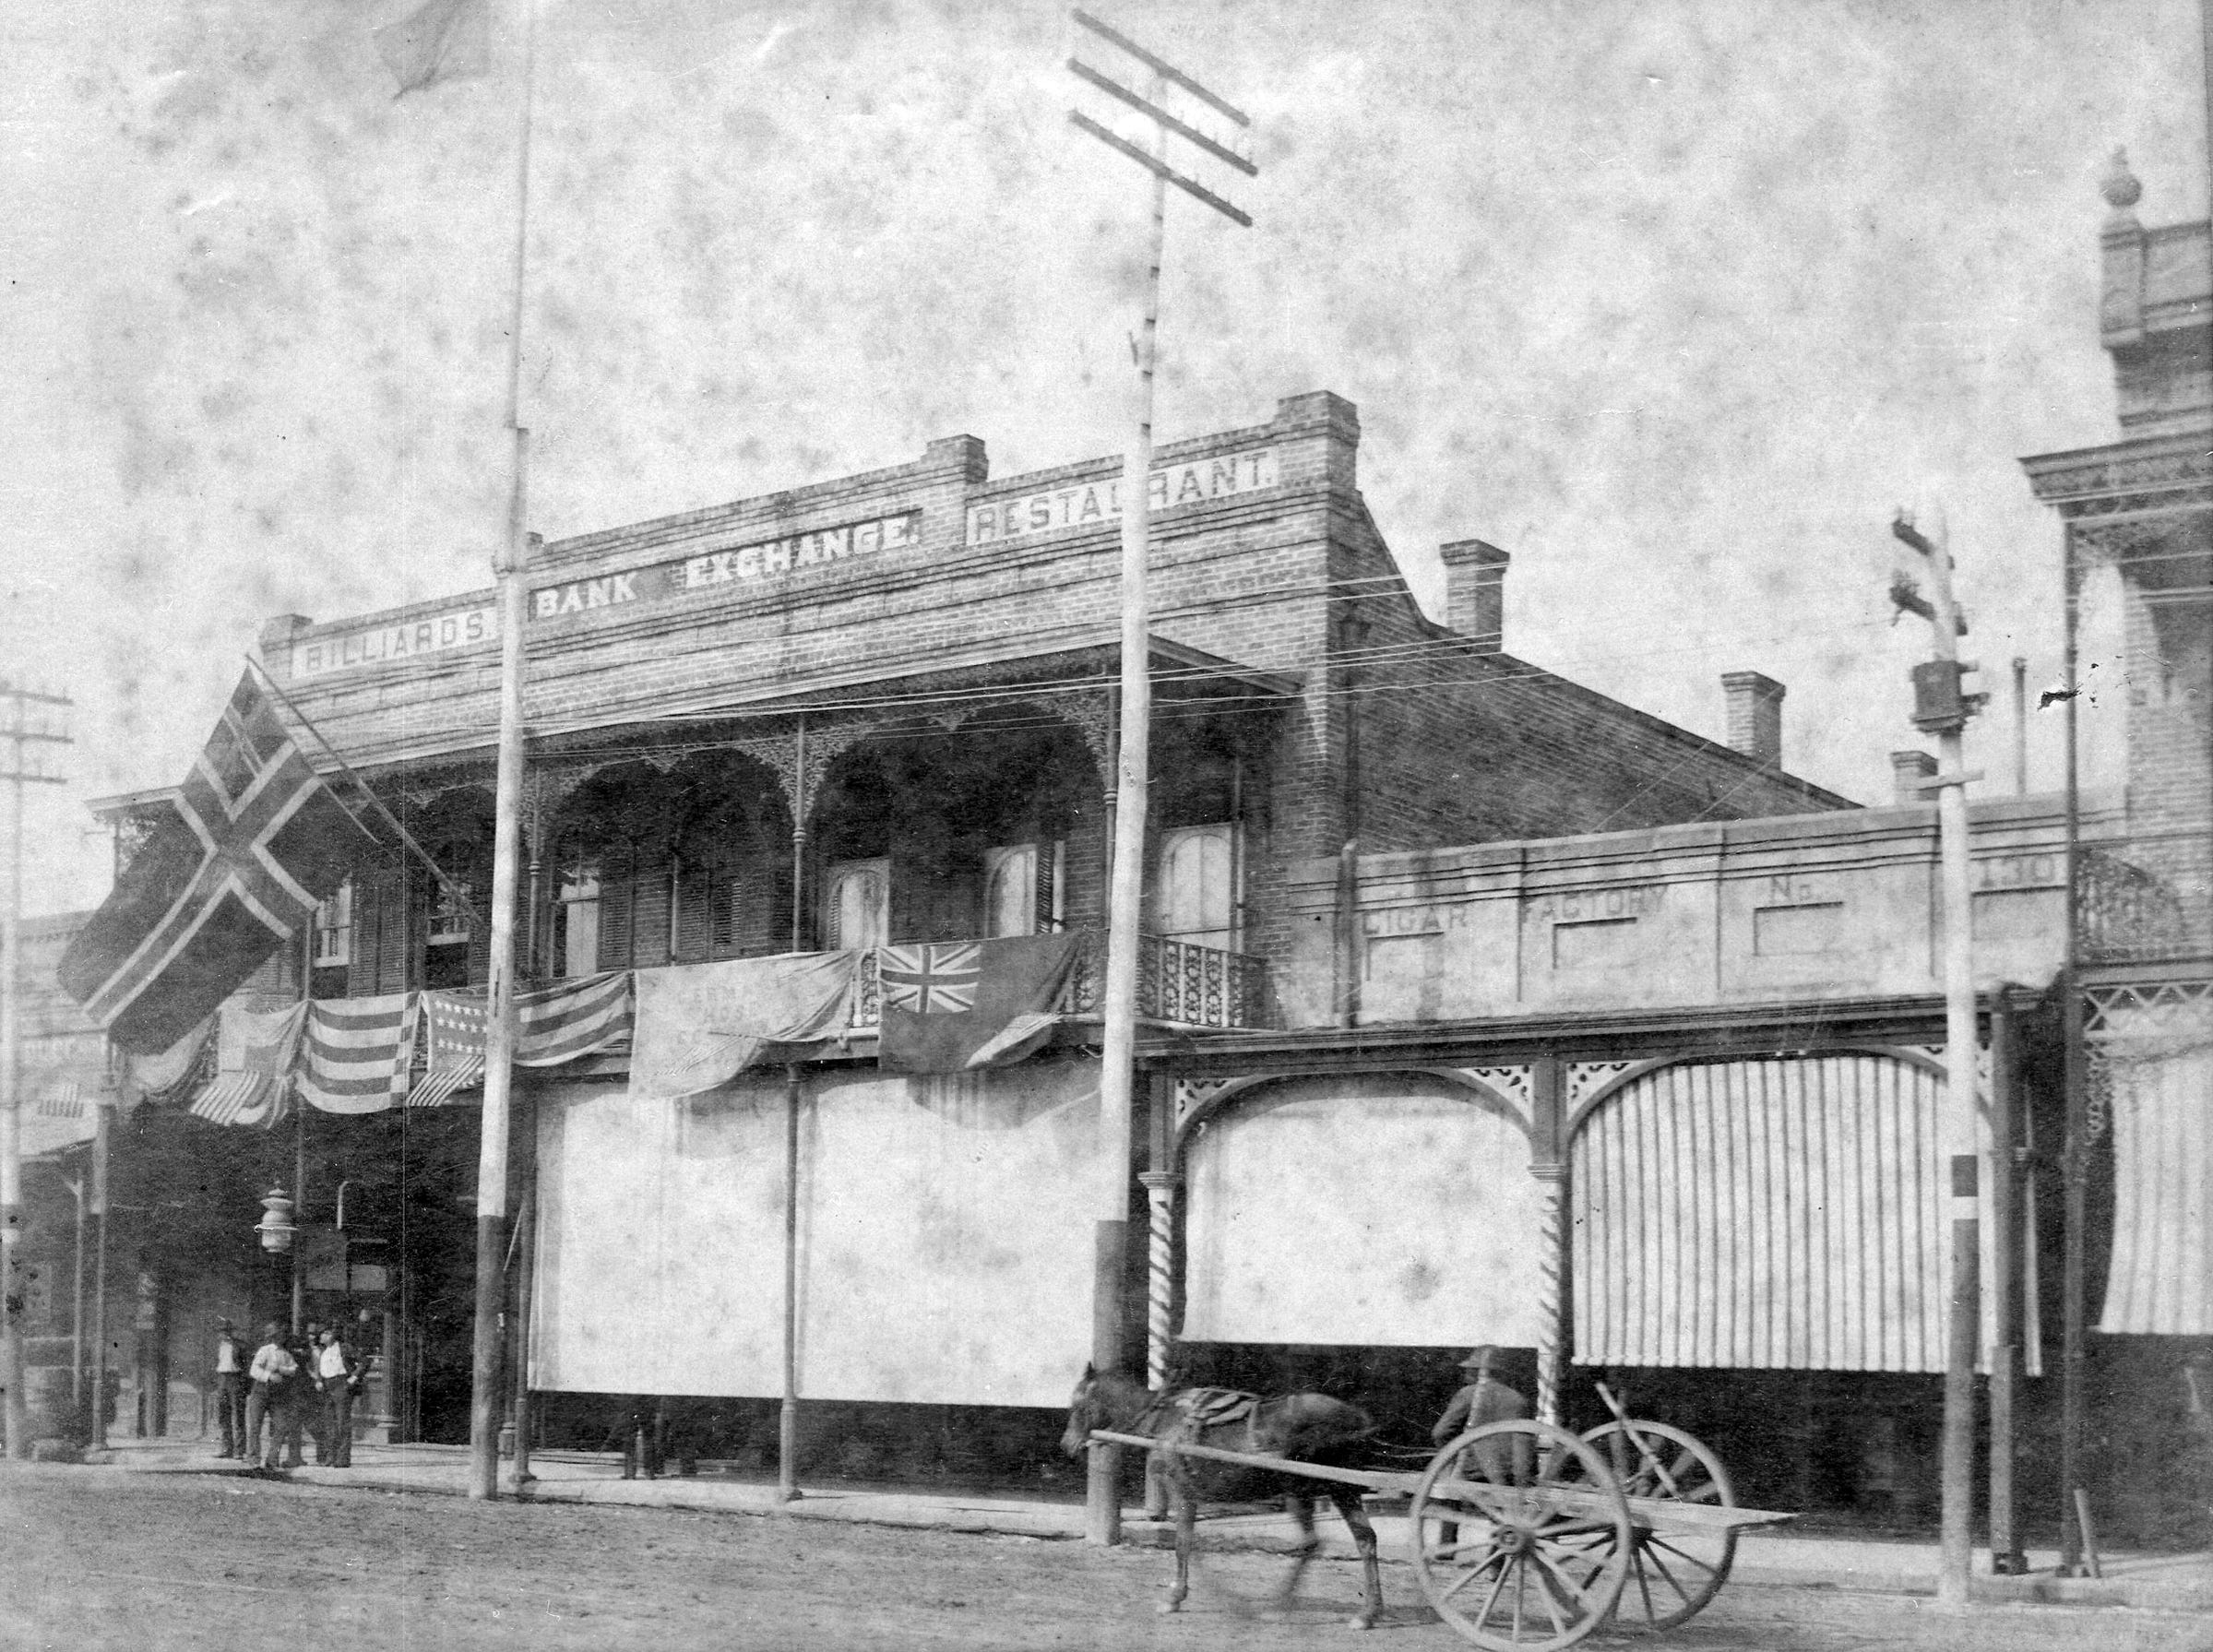 Building on Palafox Street, across from the plaza in 1898.